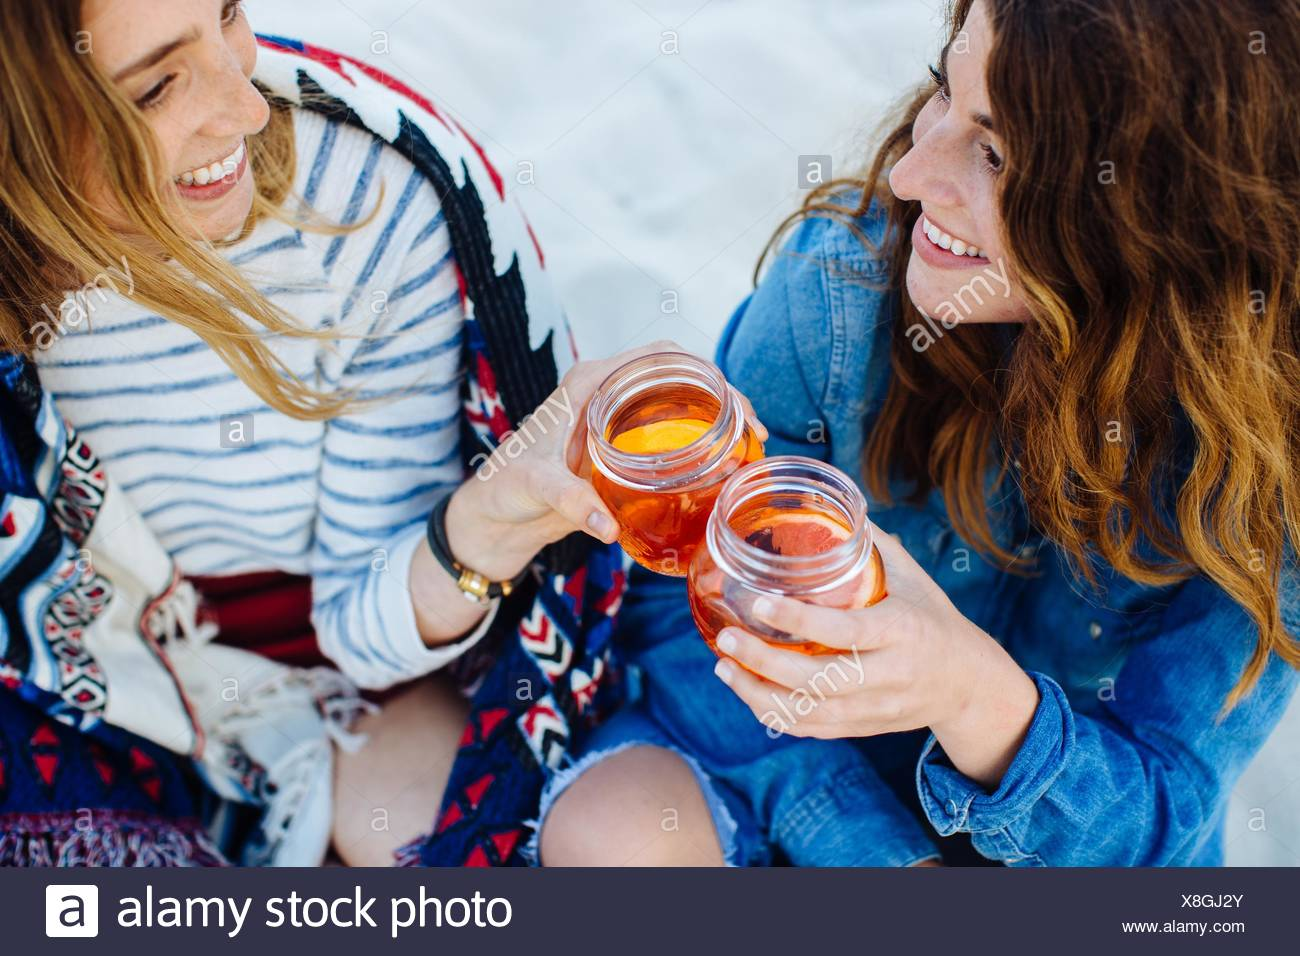 Two young female friends toasting with jar drink on beach - Stock Image